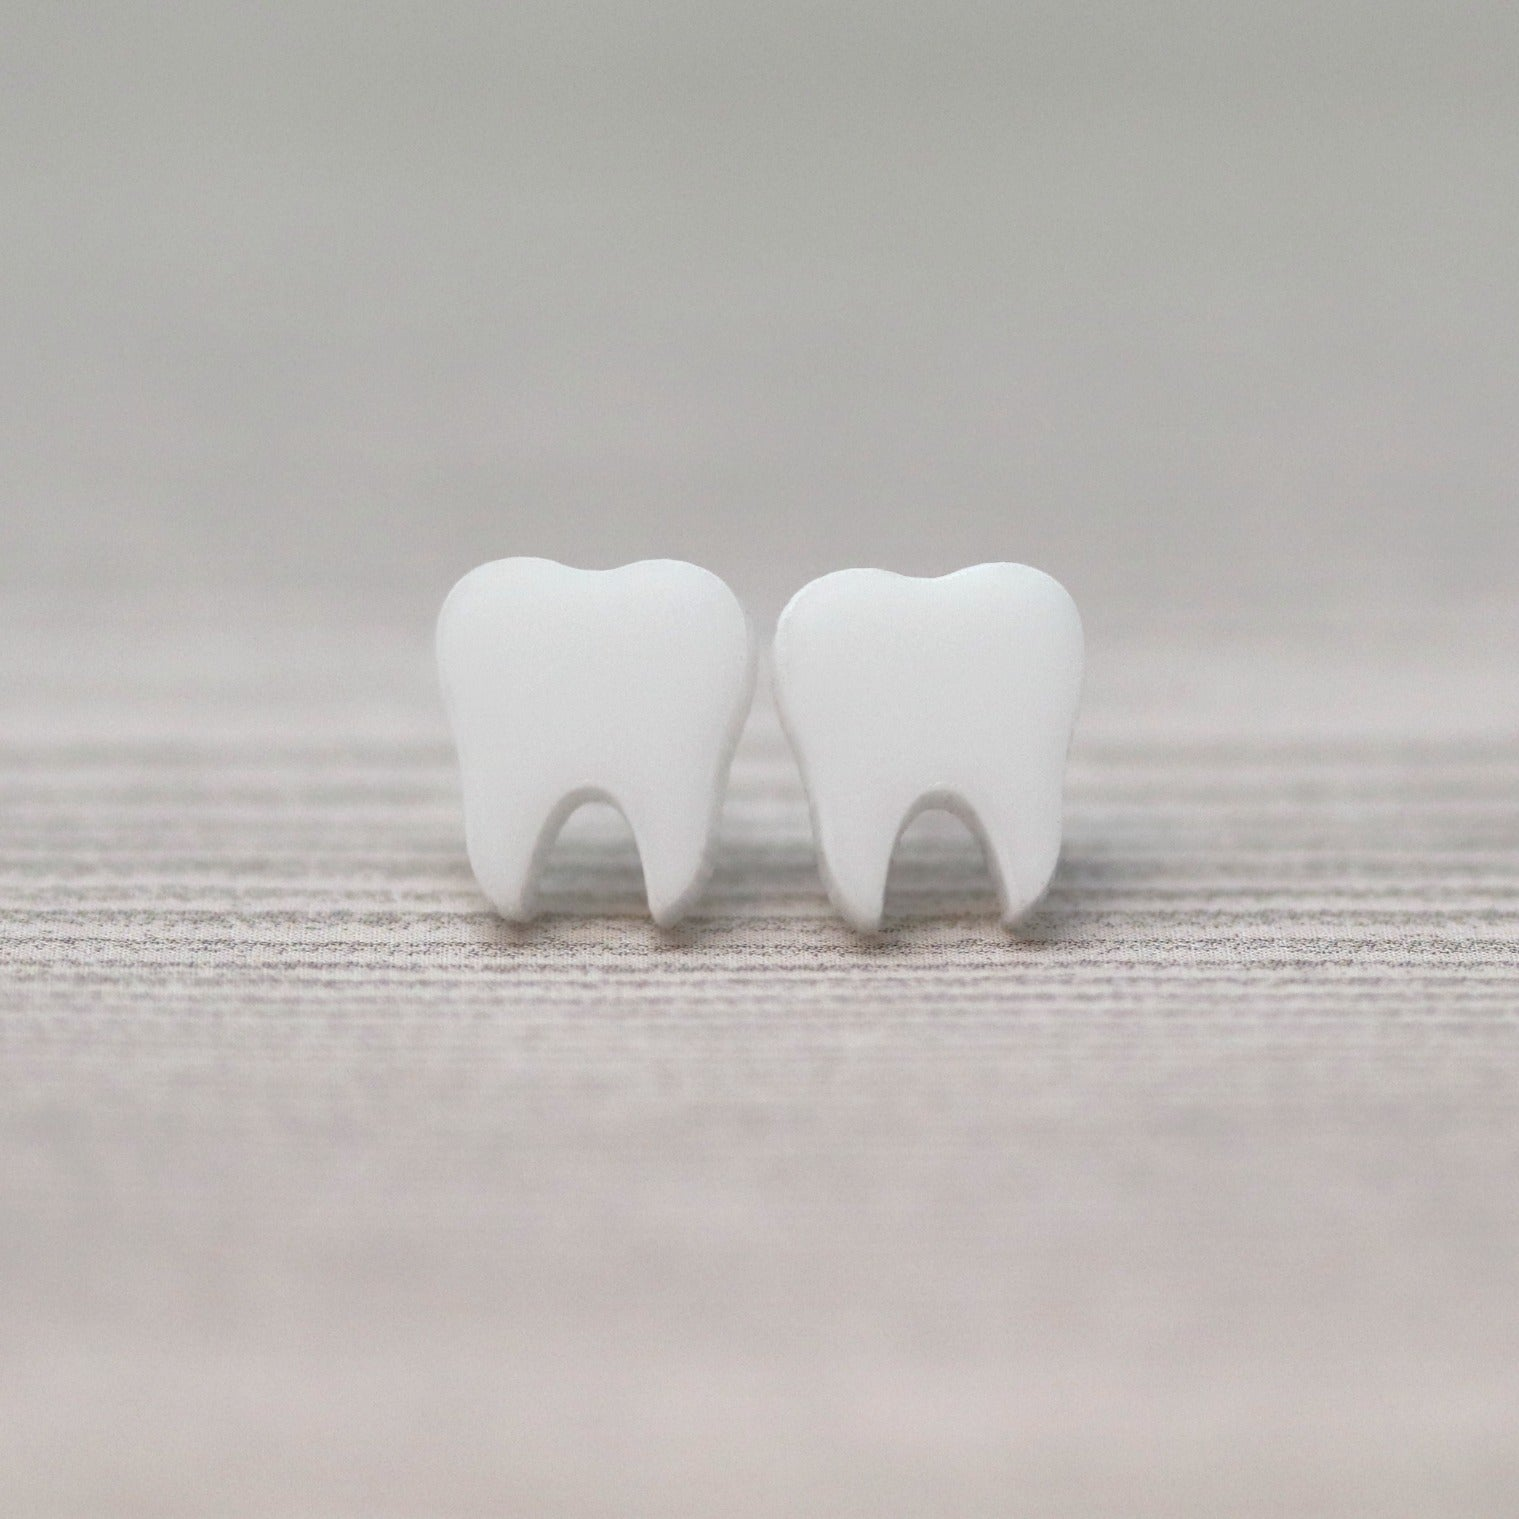 Tooth Earrings, Plastic Post or Invisible Clip On, 10mm Metal Free